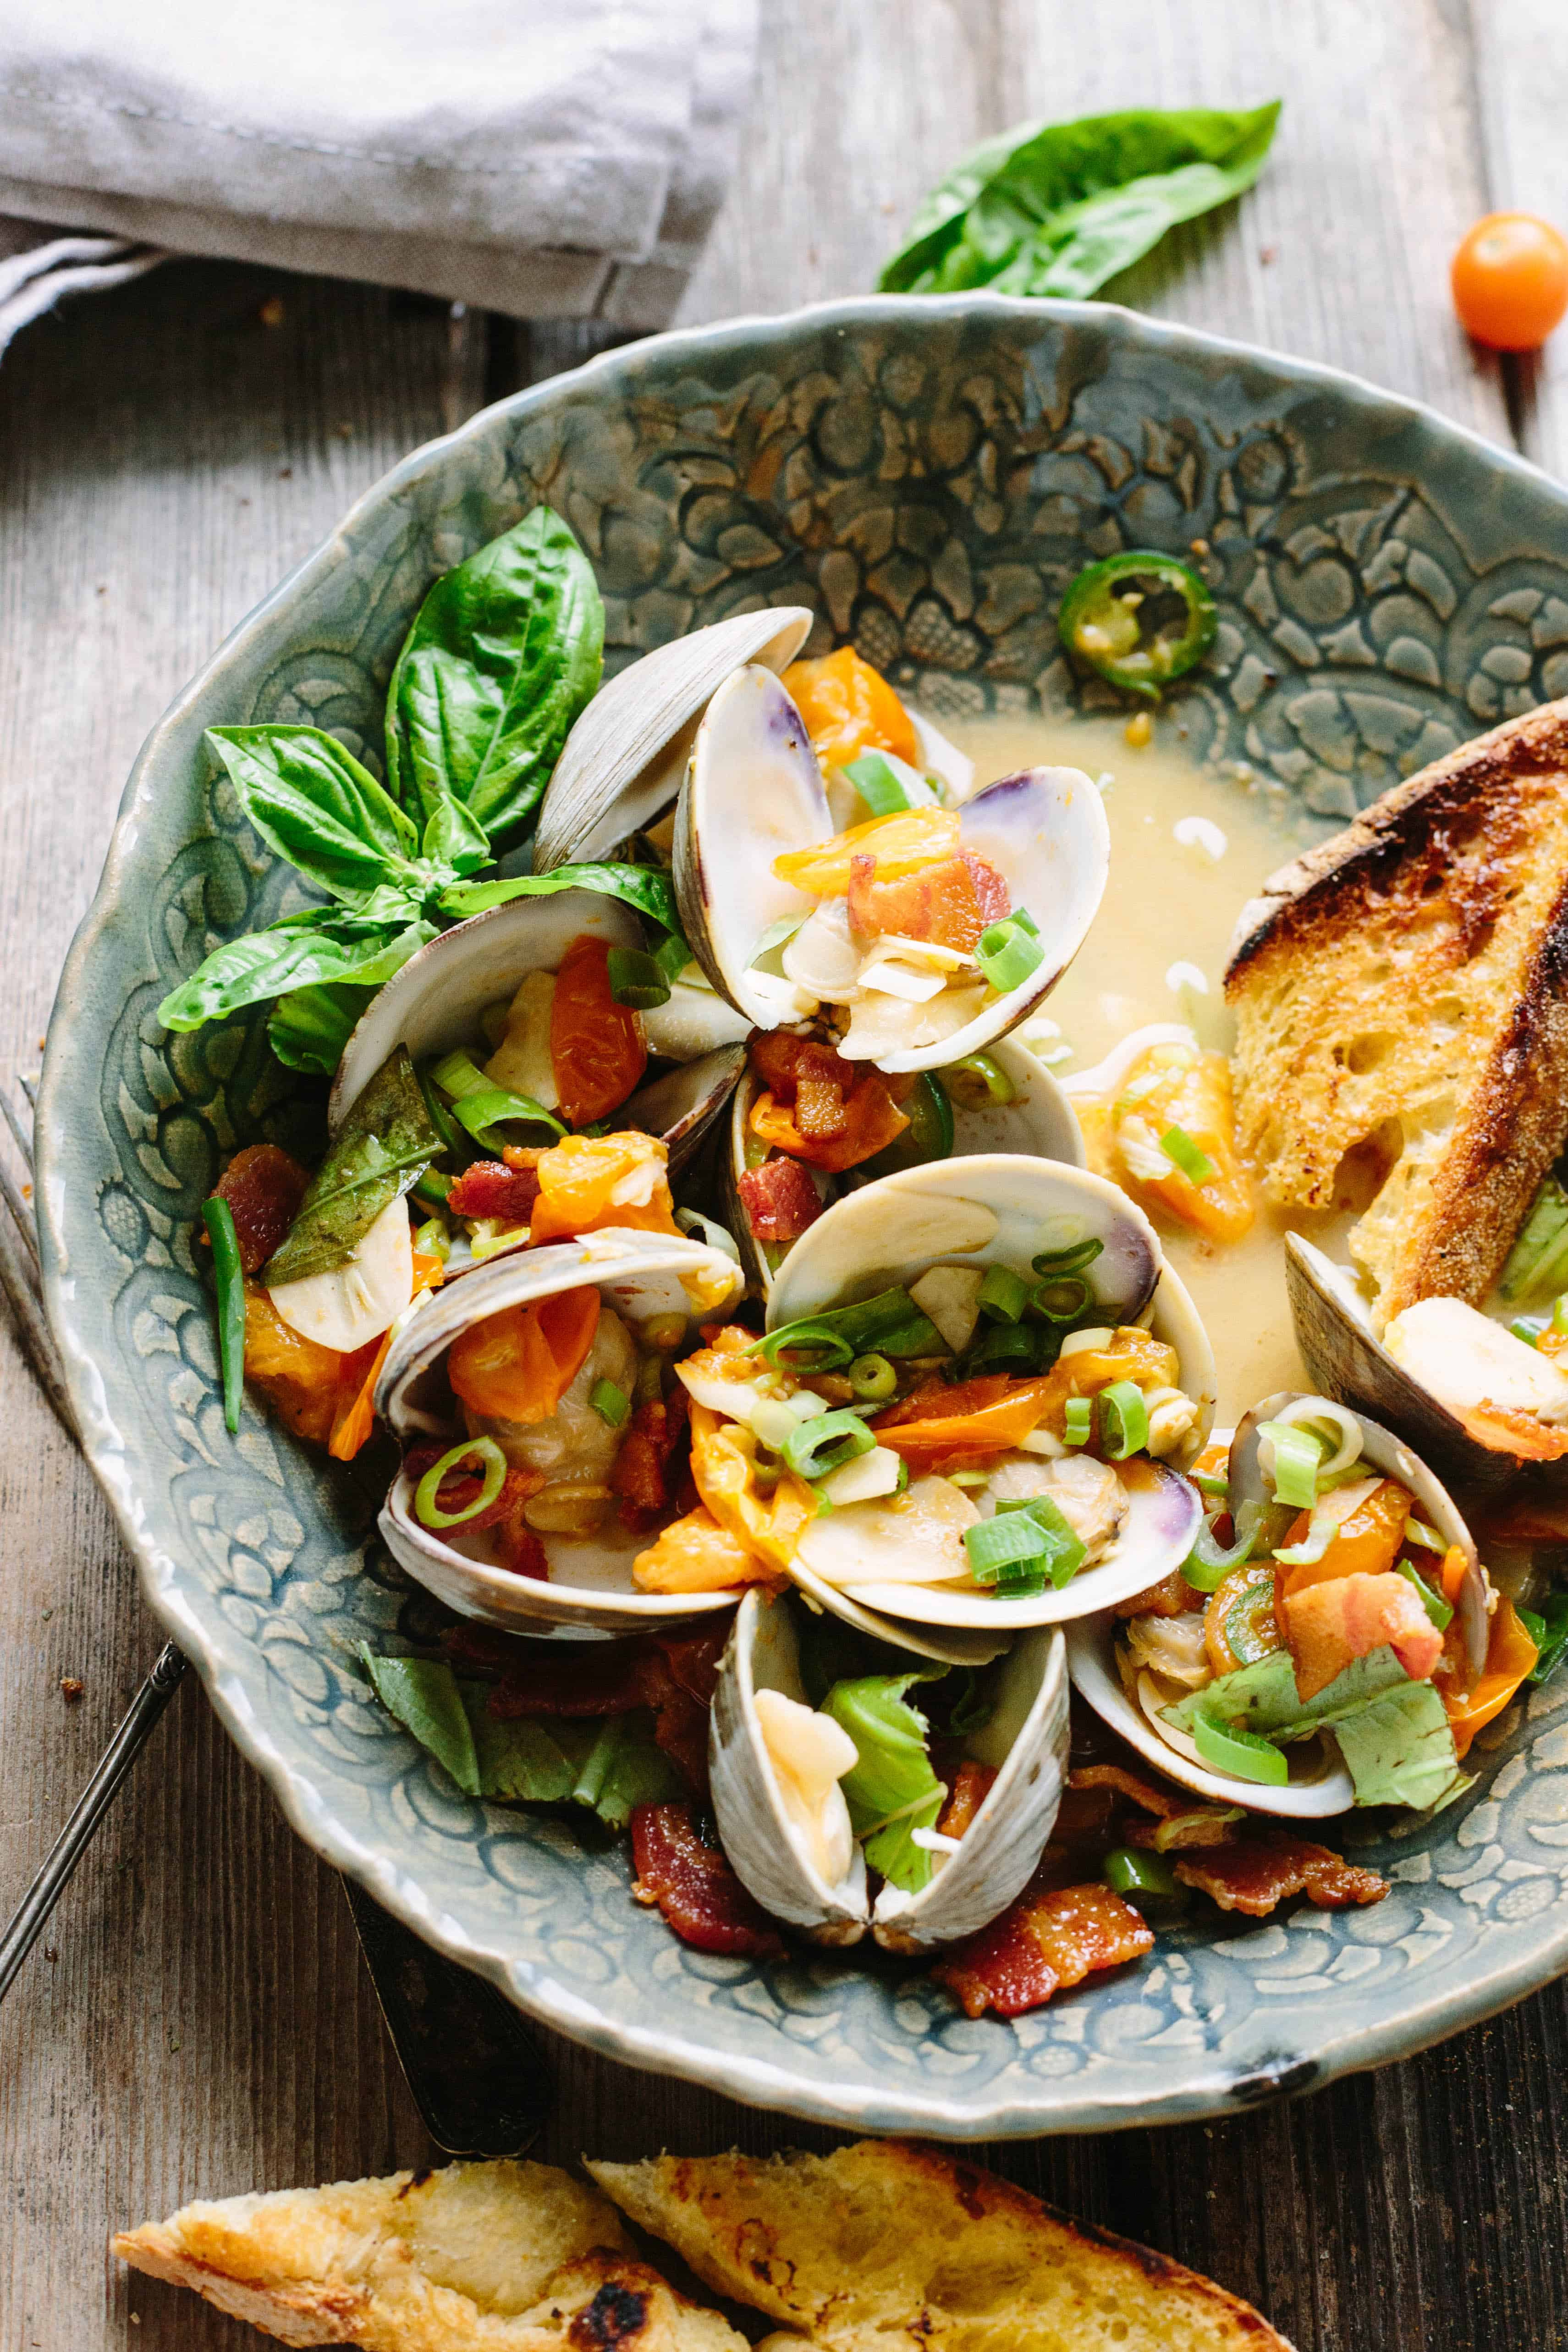 A serving bowl with tomato and jalapeno topped clams next to sliced and toasted baguette.